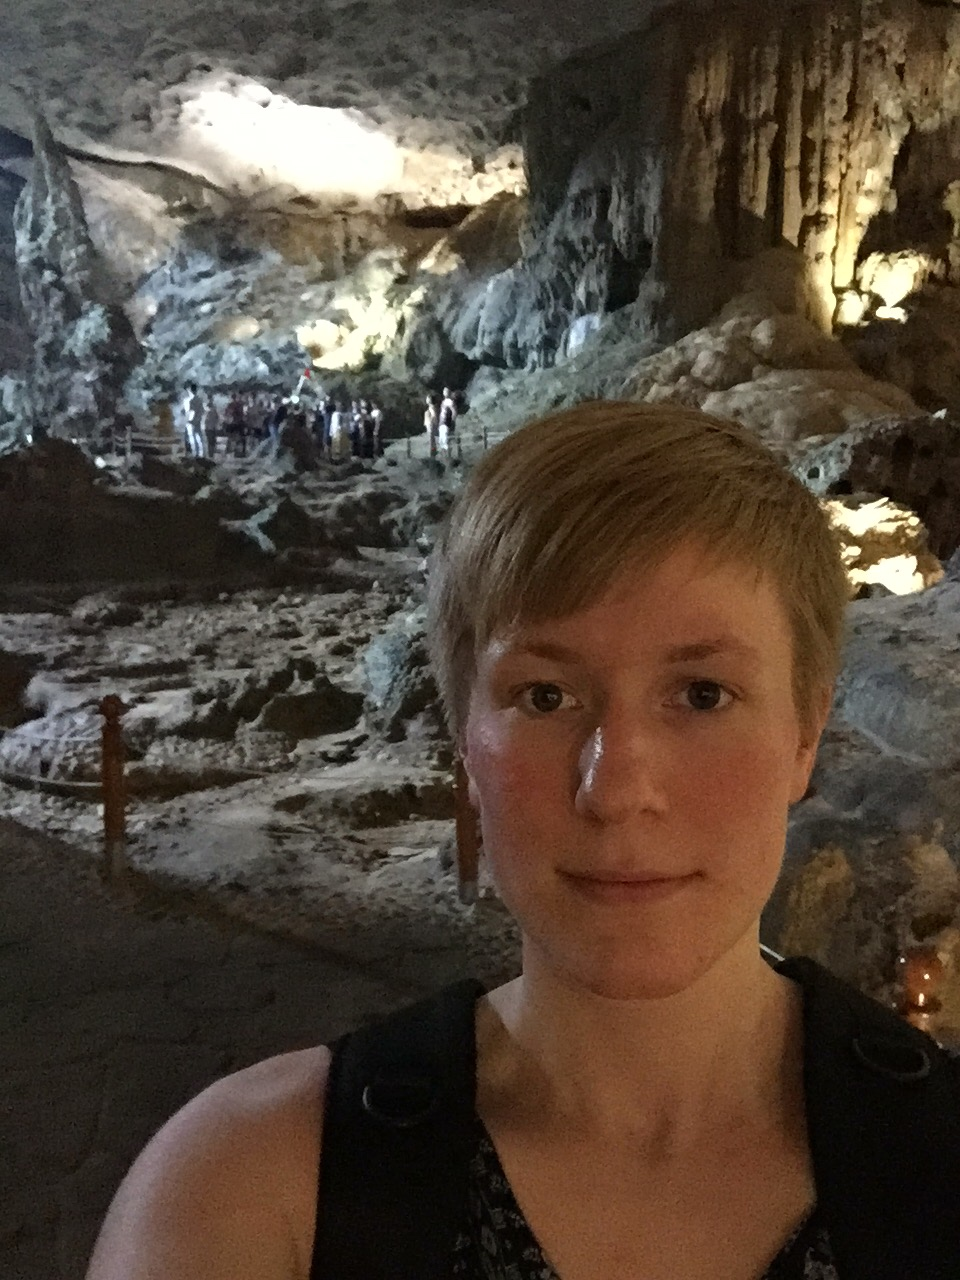 Selfie at Sung Sot Cave